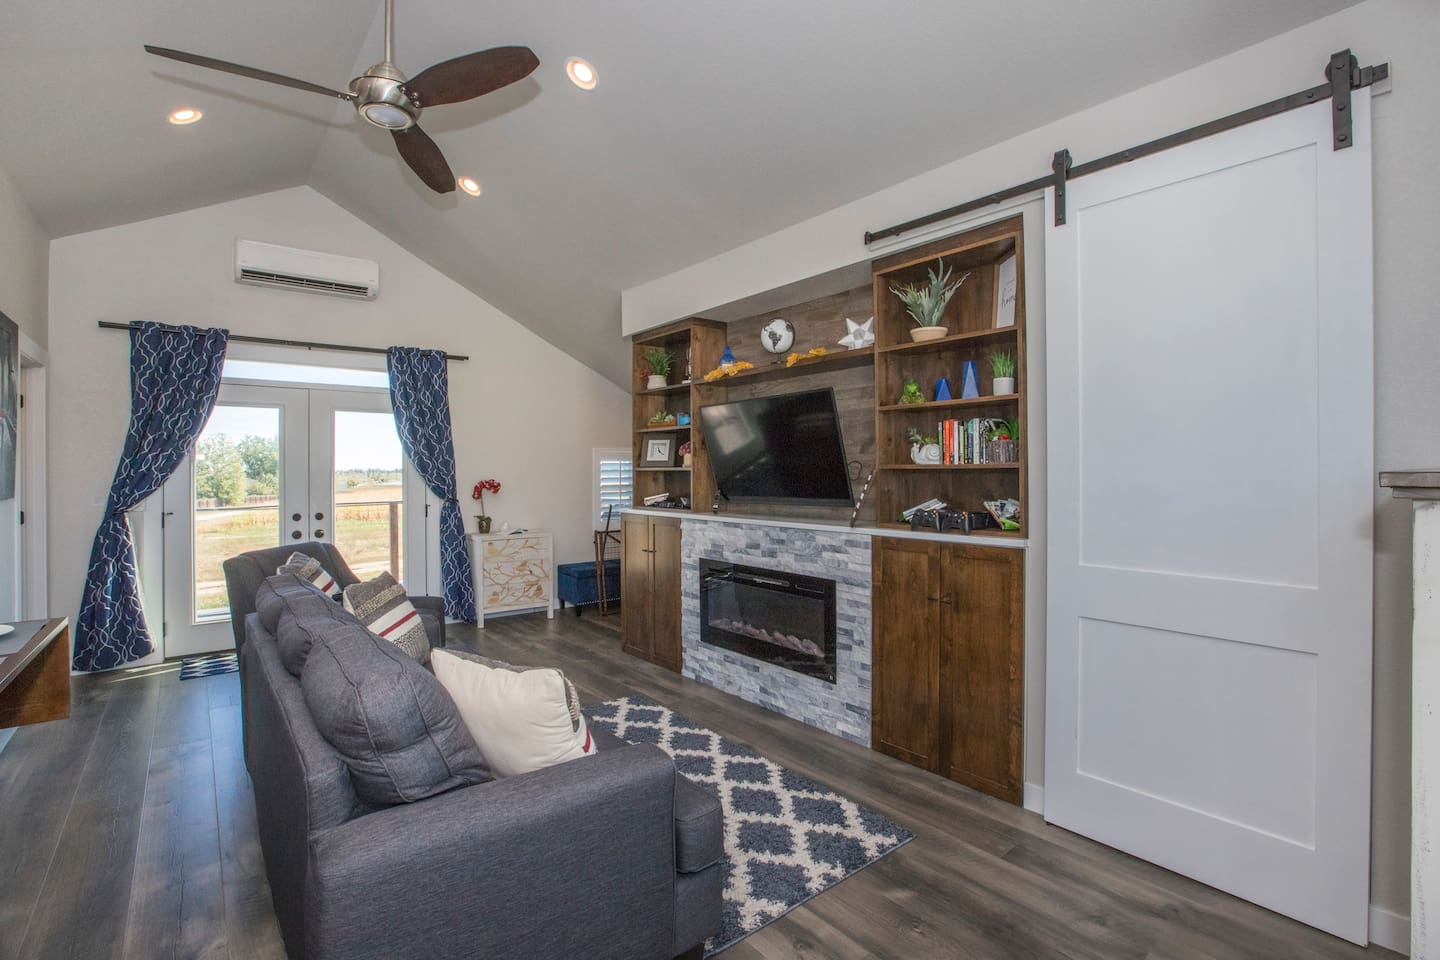 Welcome to the Bird House. A cozy studio loft, with everything you need for a night or a month. Out the french doors is a 20' wide deck with beautiful views.